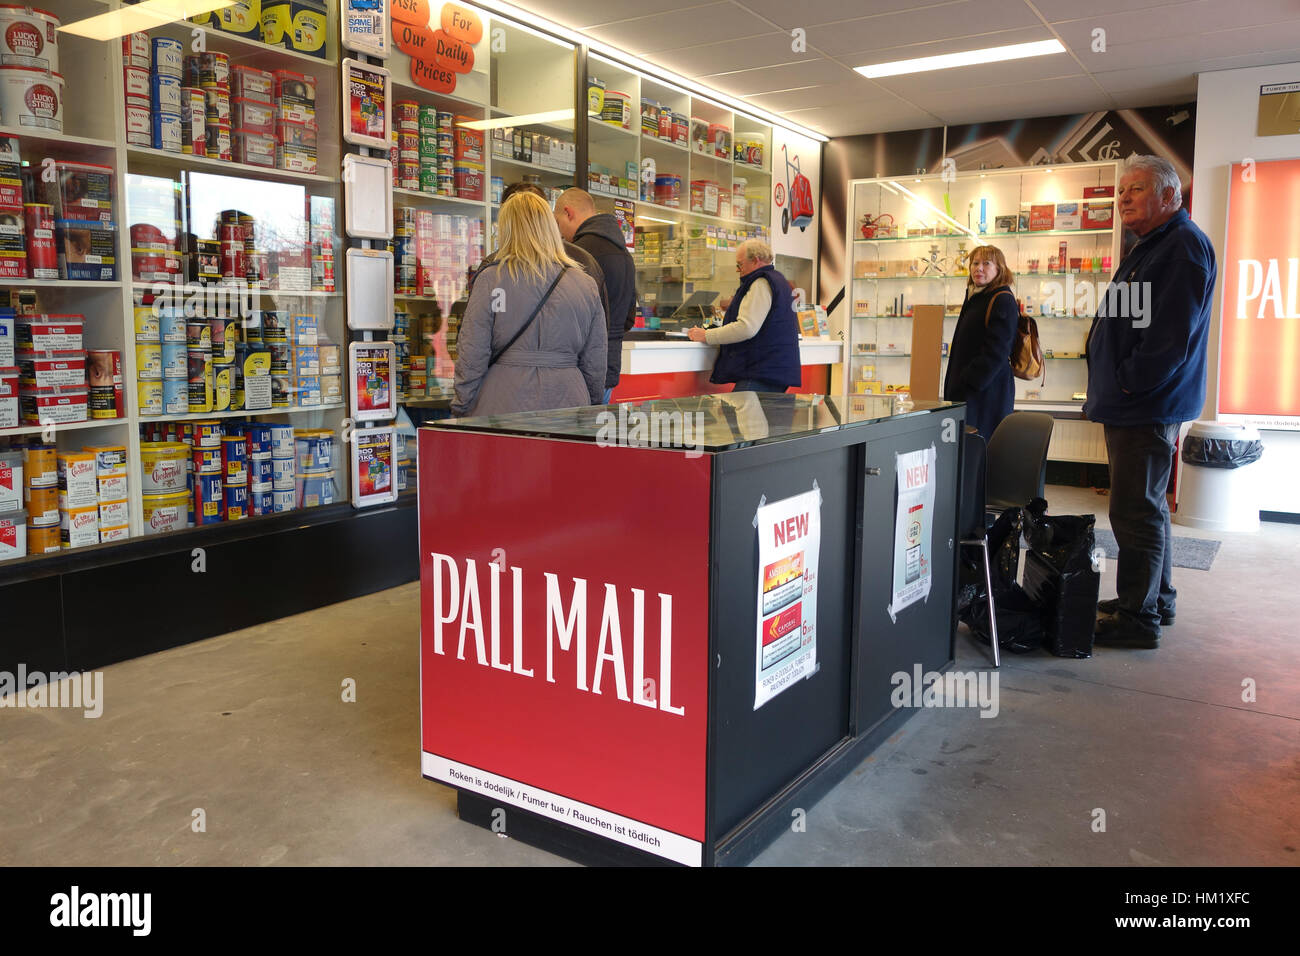 Where to buy State Express cigarettes in Australia